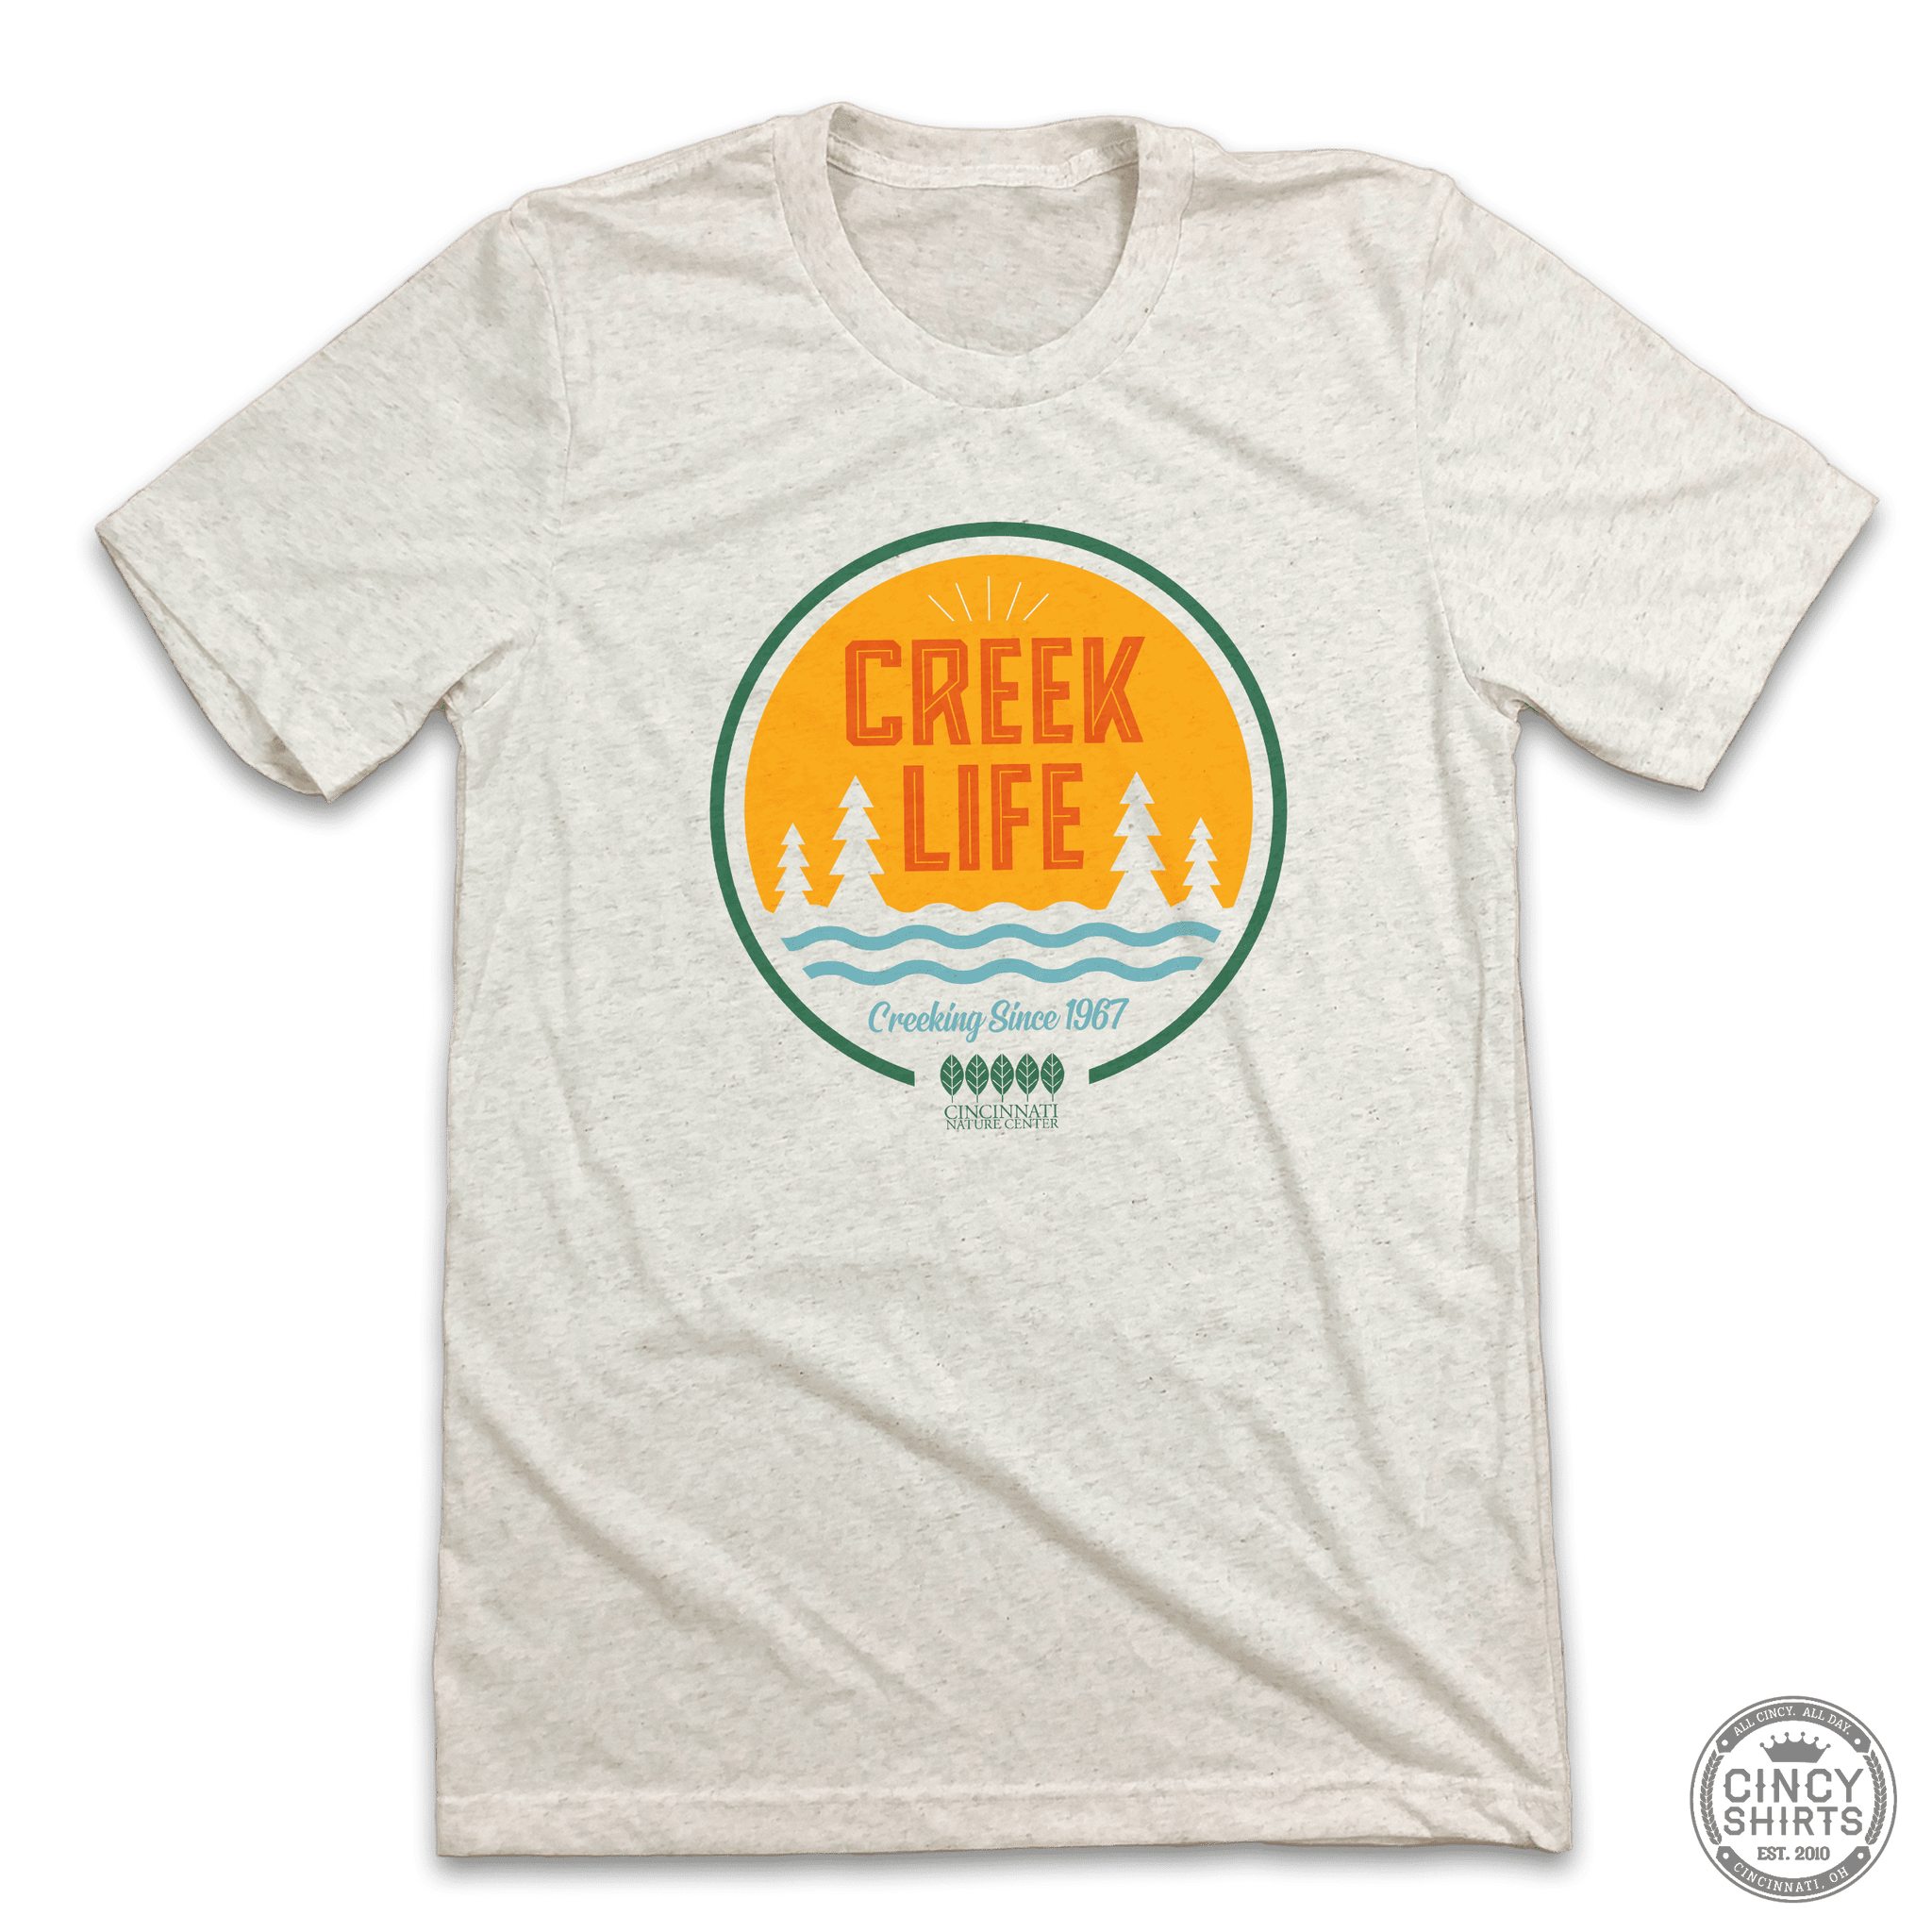 7d241dd23 Cincy Shirts | Cincinnati T Shirts | Cincy Tees | Cool Cincy T-Shirts